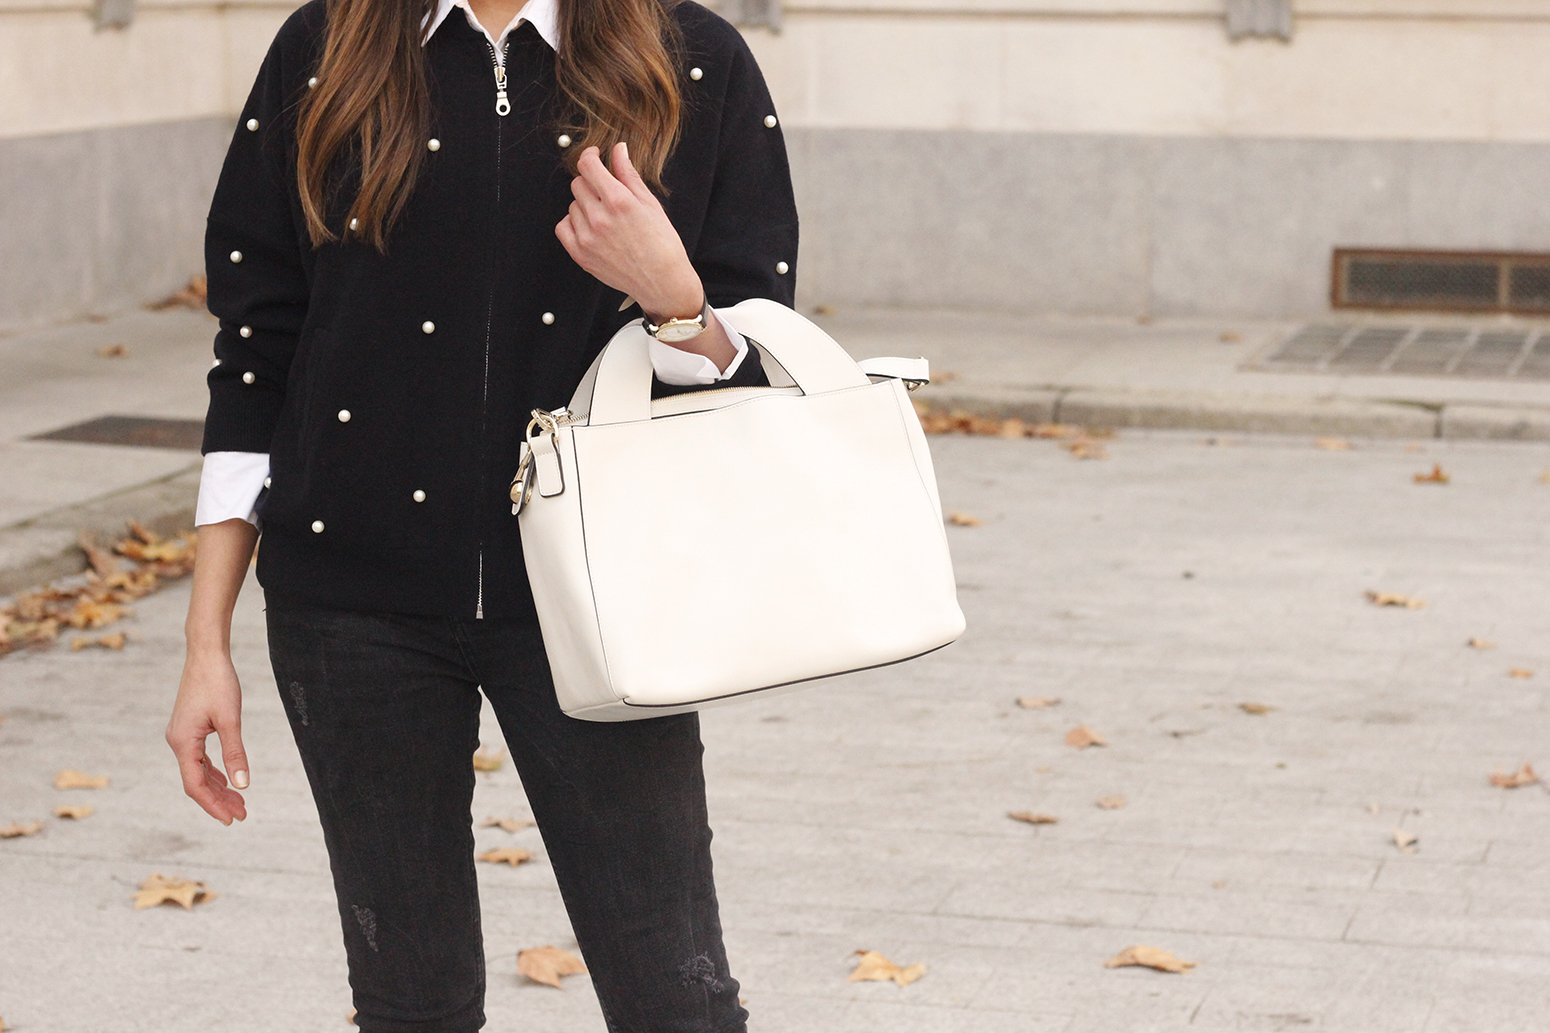 pearl bomber uterqüe black jeans white bag winter outfit 2018 style fashionbomber11